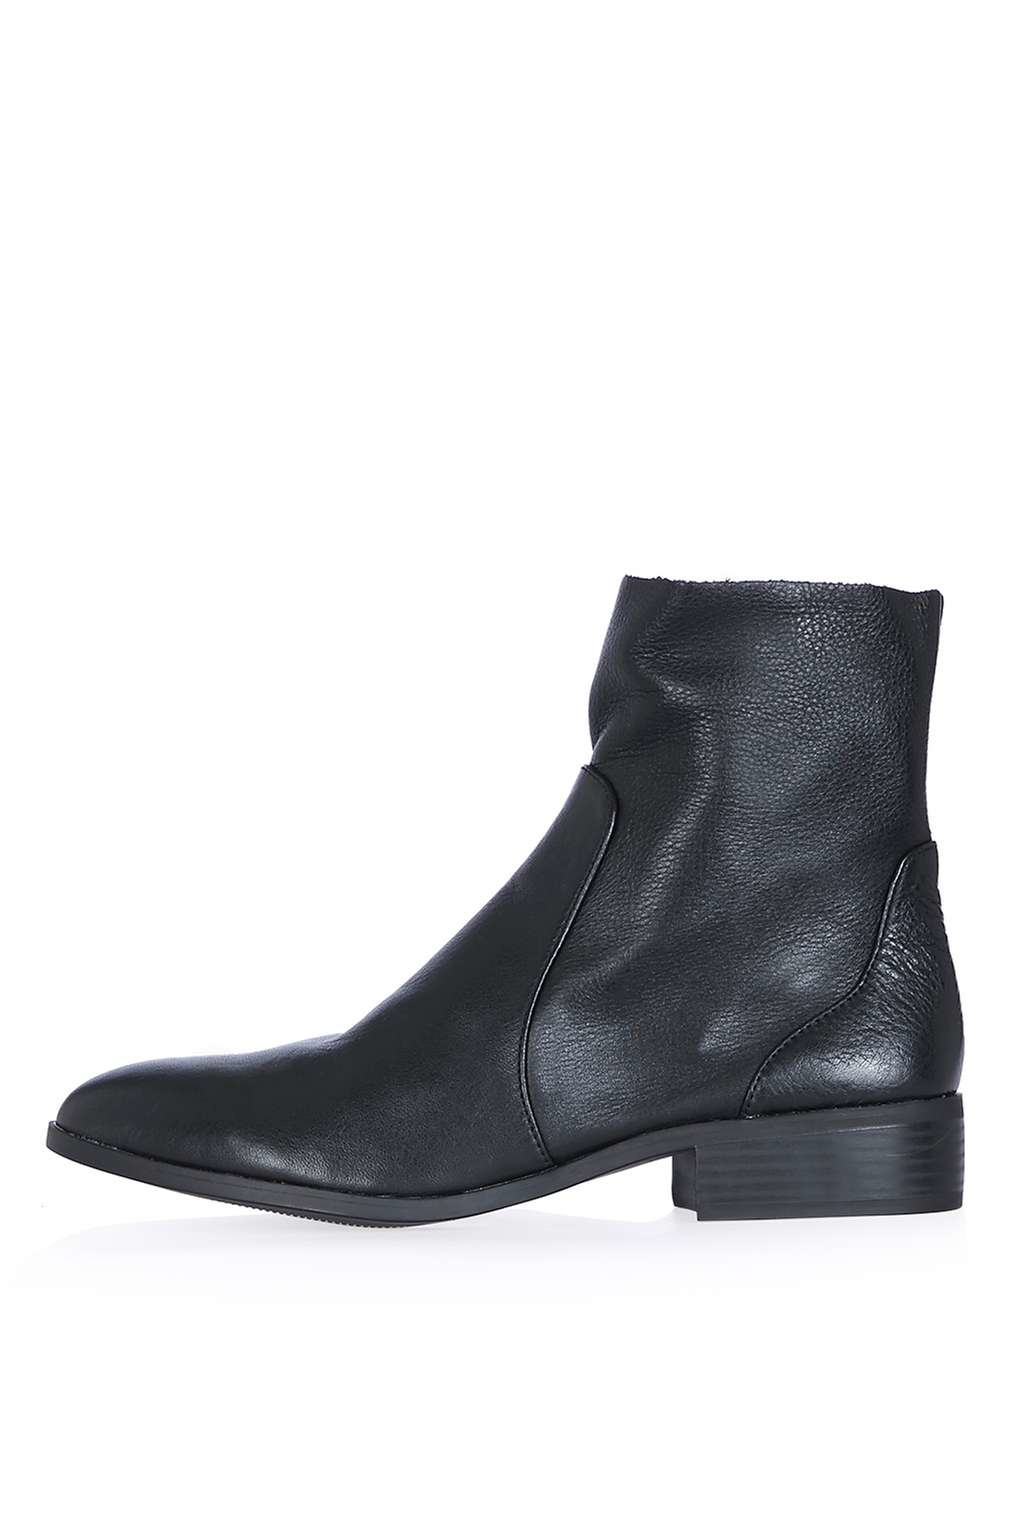 Topshop Black Suede Ankle Boots Size 42